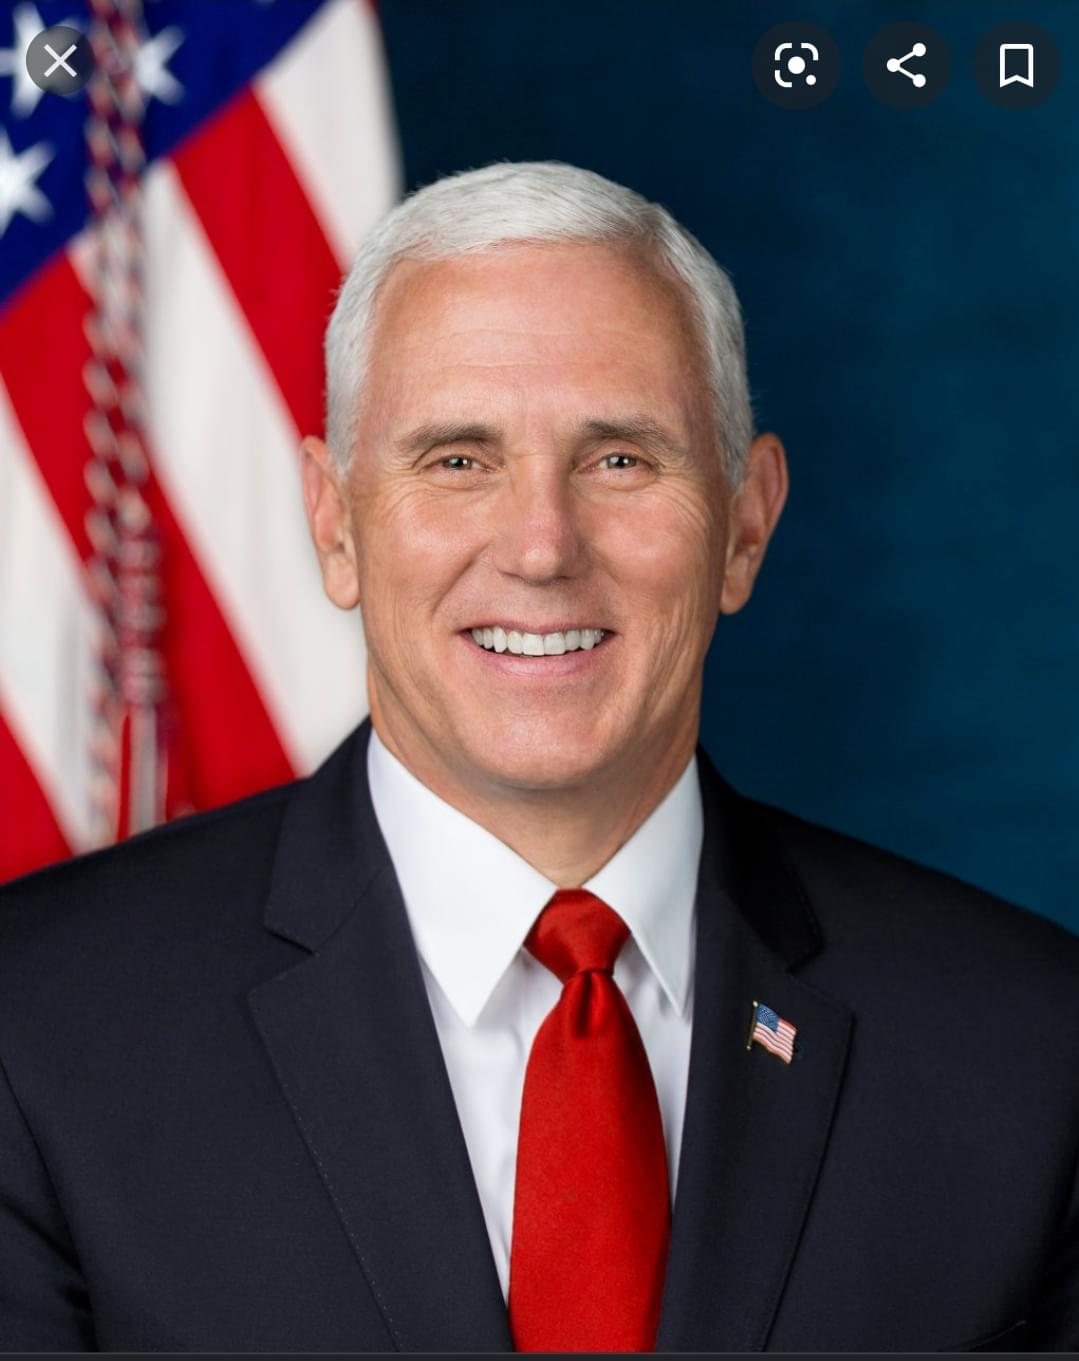 VP Pence Plans Visit to Lemoore Naval Air Station